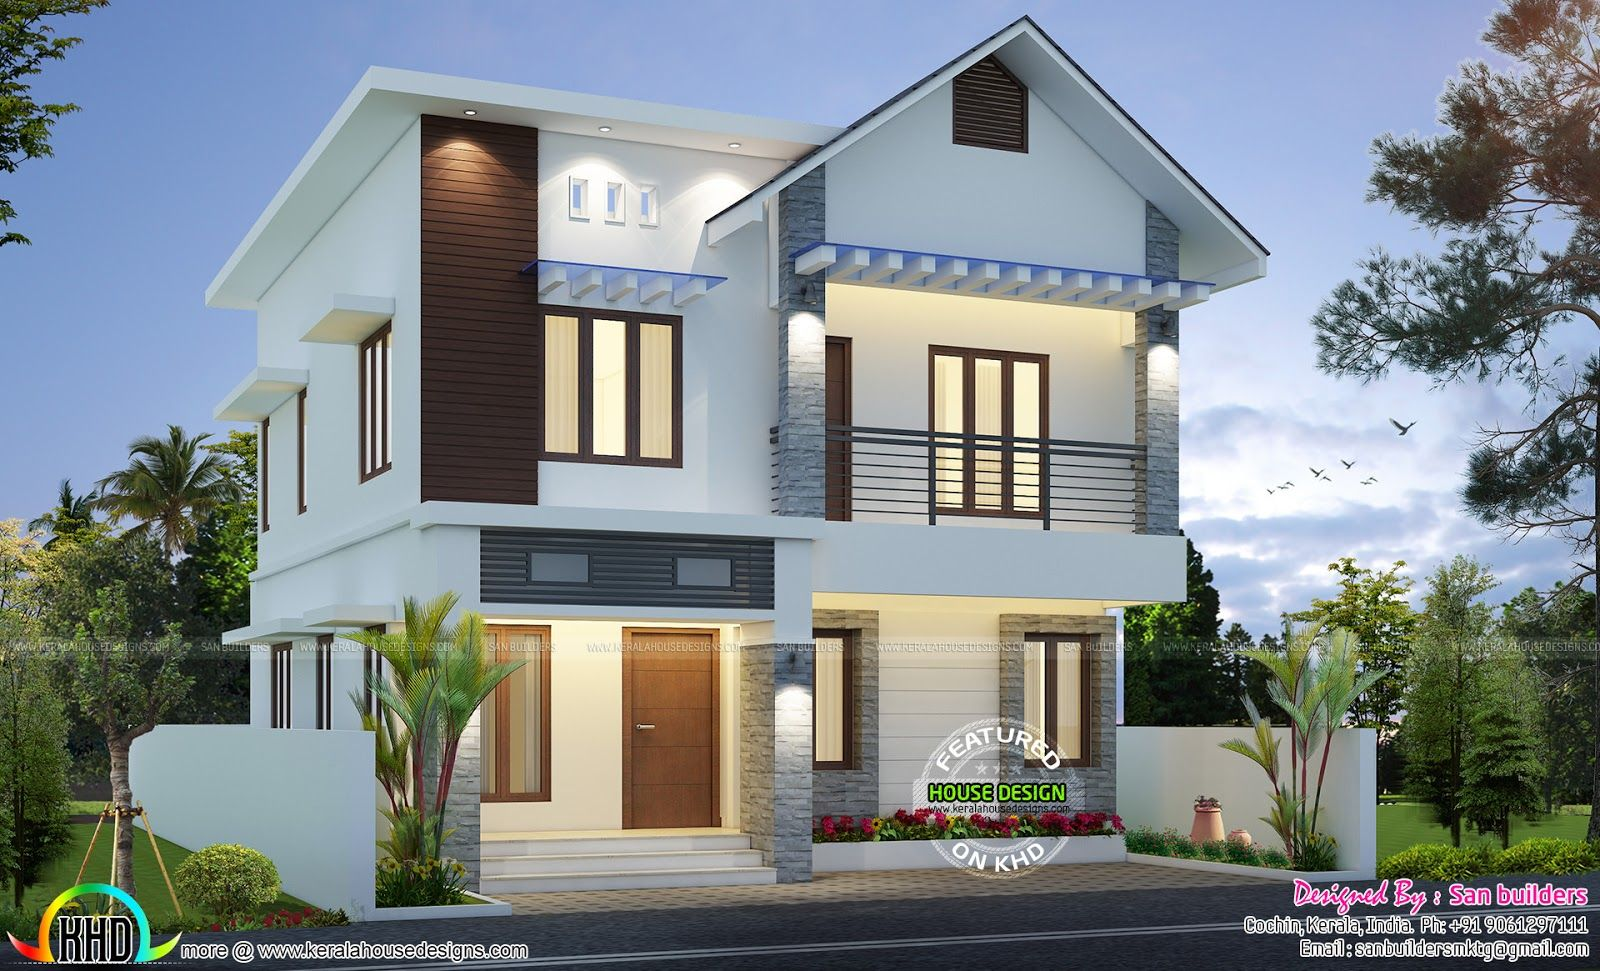 1431 sq-ft cute home plan | Homes | House plans, House ...